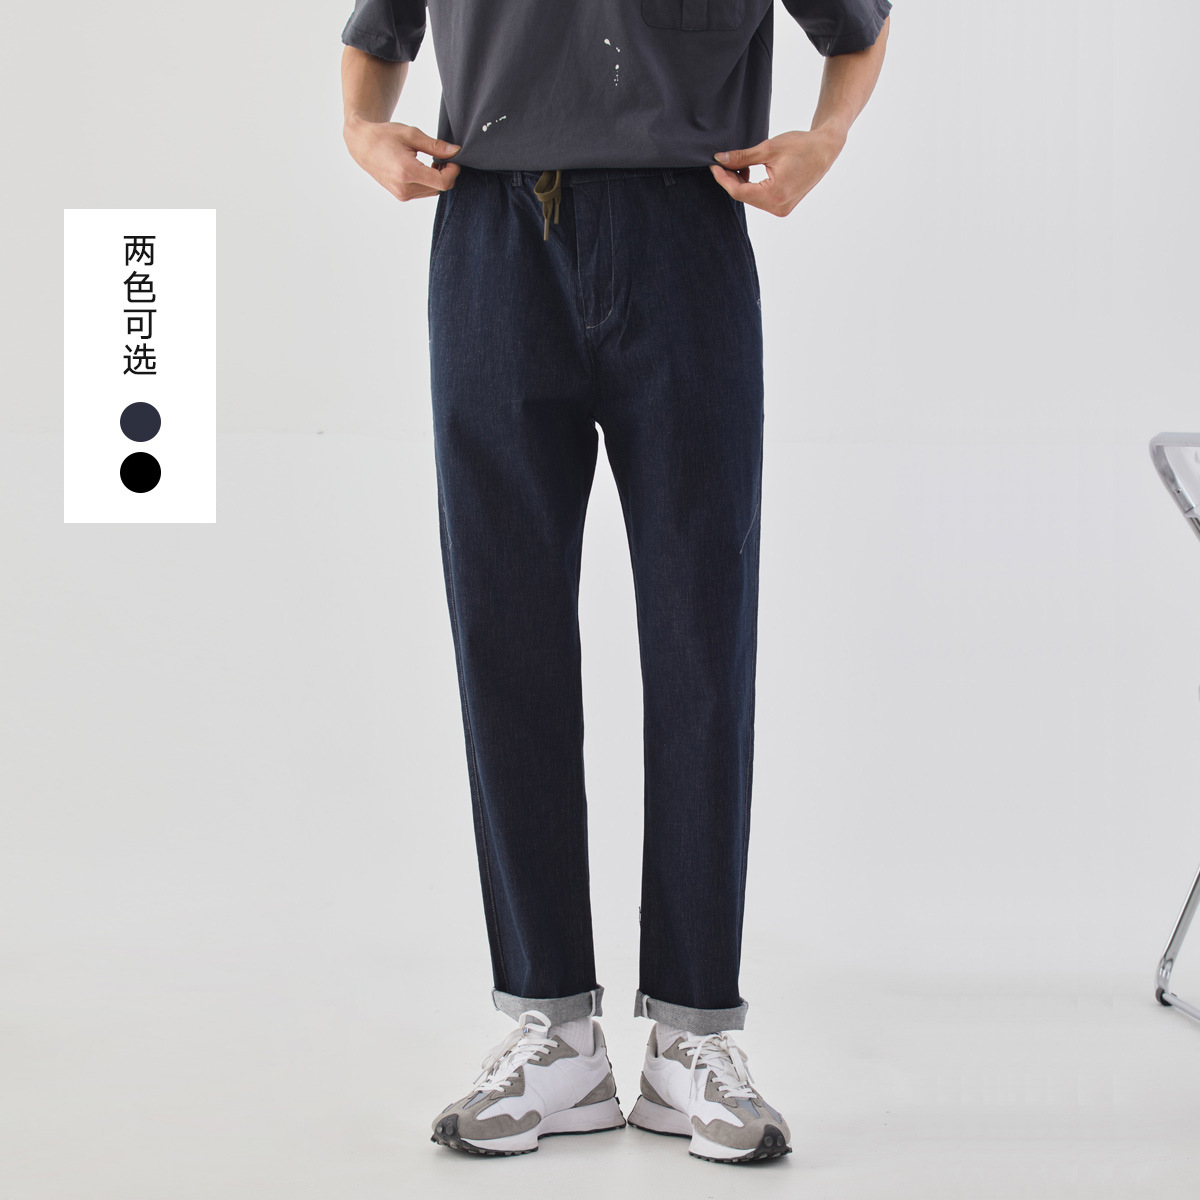 ACTIVECHO Yizhi Men's Fashion Simple Men's Jeans Spring 2021 New Trend Blue Casual Workwear Trouse